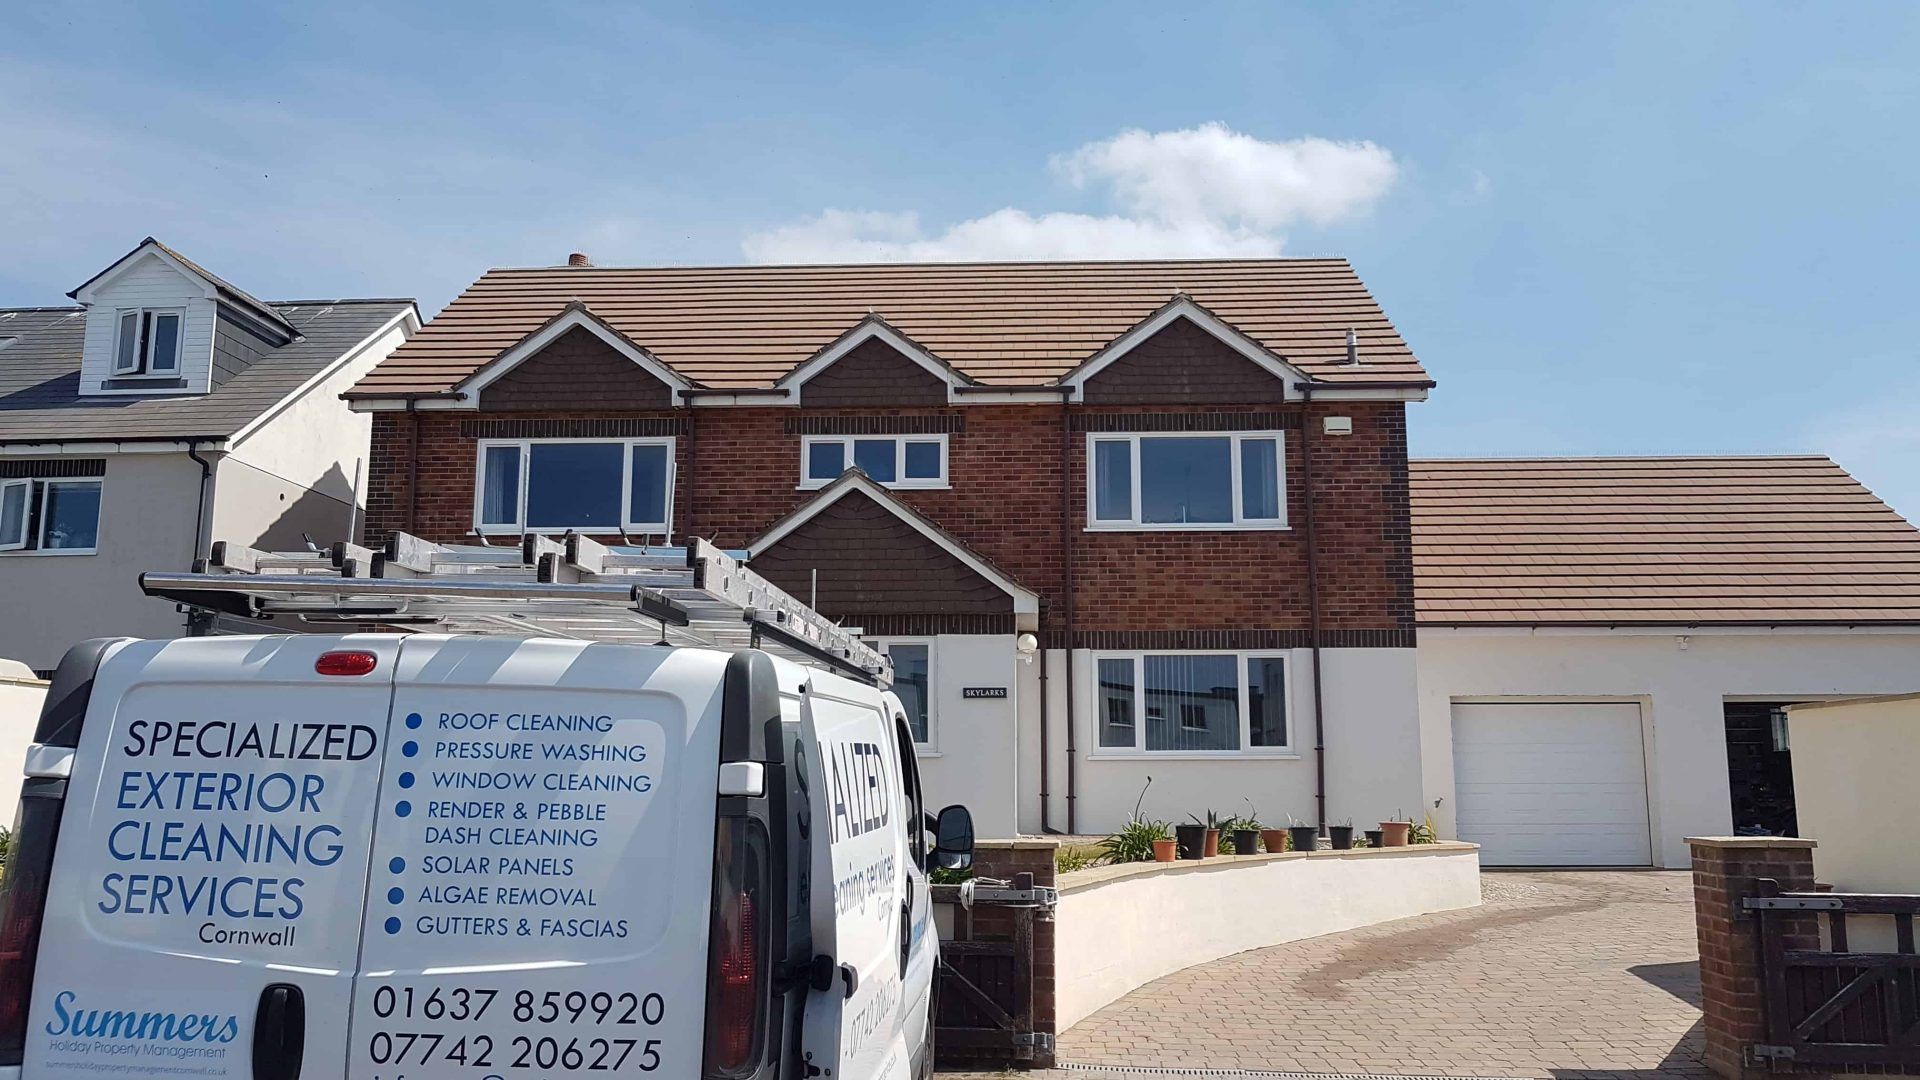 Exterior Cleaning Services Cornwall